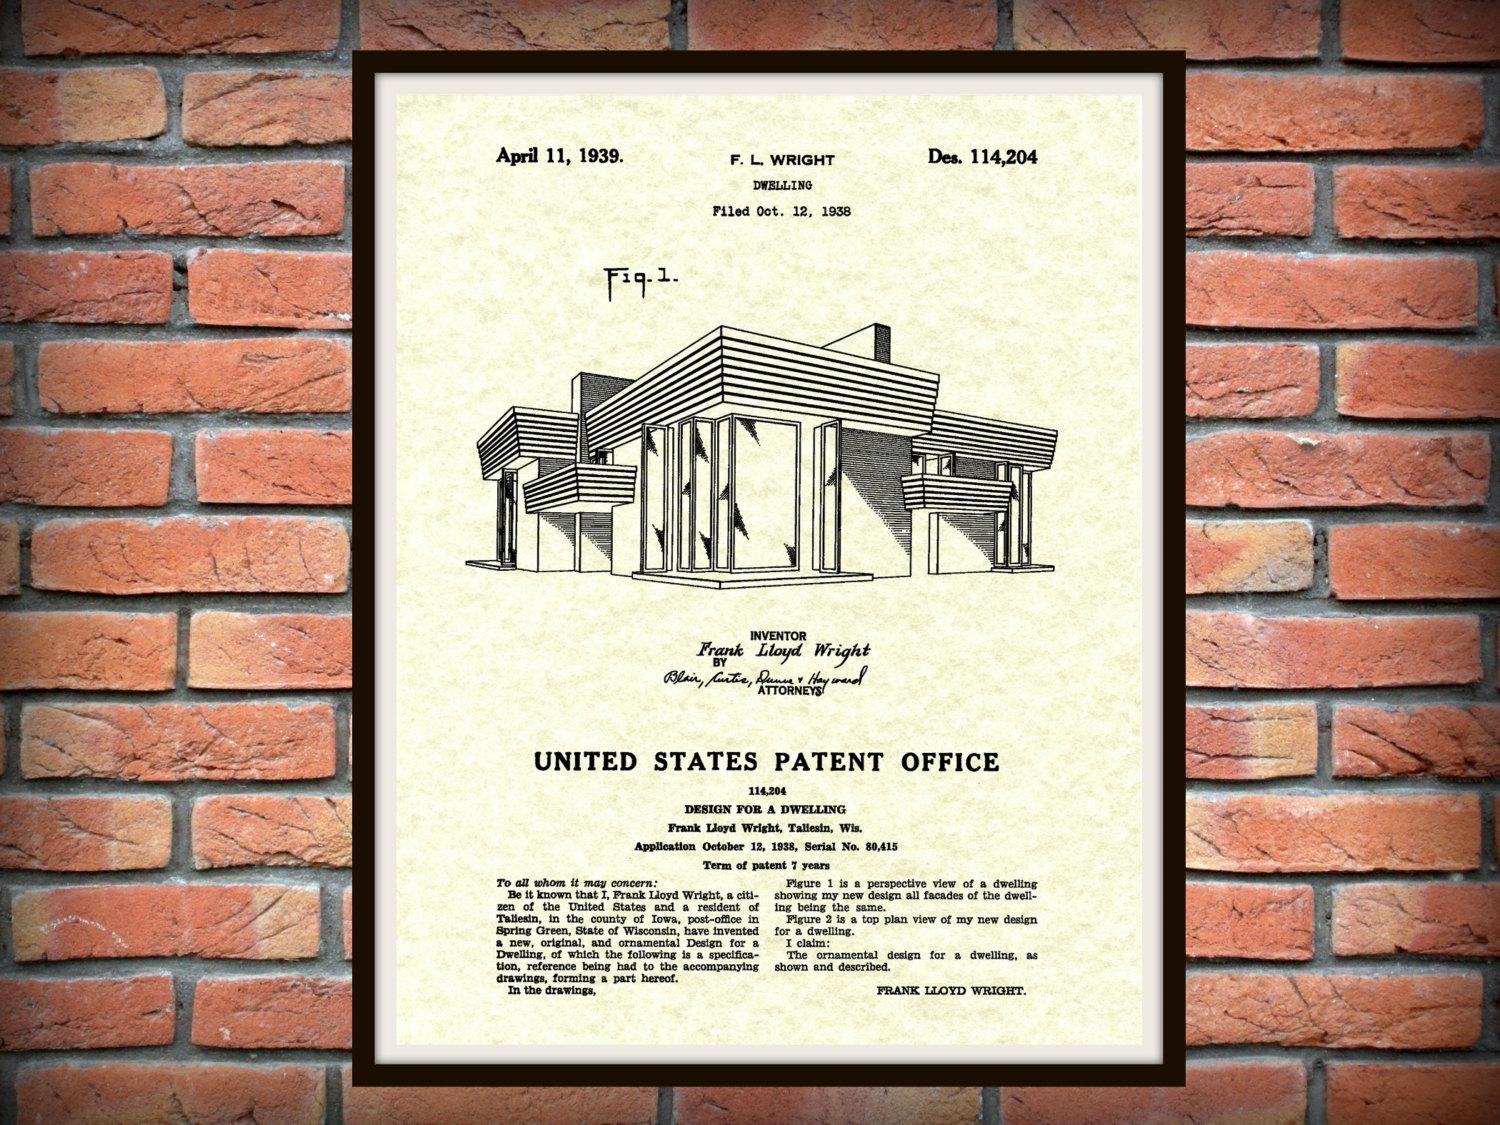 Patent 1939 Frank Lloyd Wright House Architecture – Dwelling Art Regarding Frank Lloyd Wright Wall Art (Photo 3 of 20)